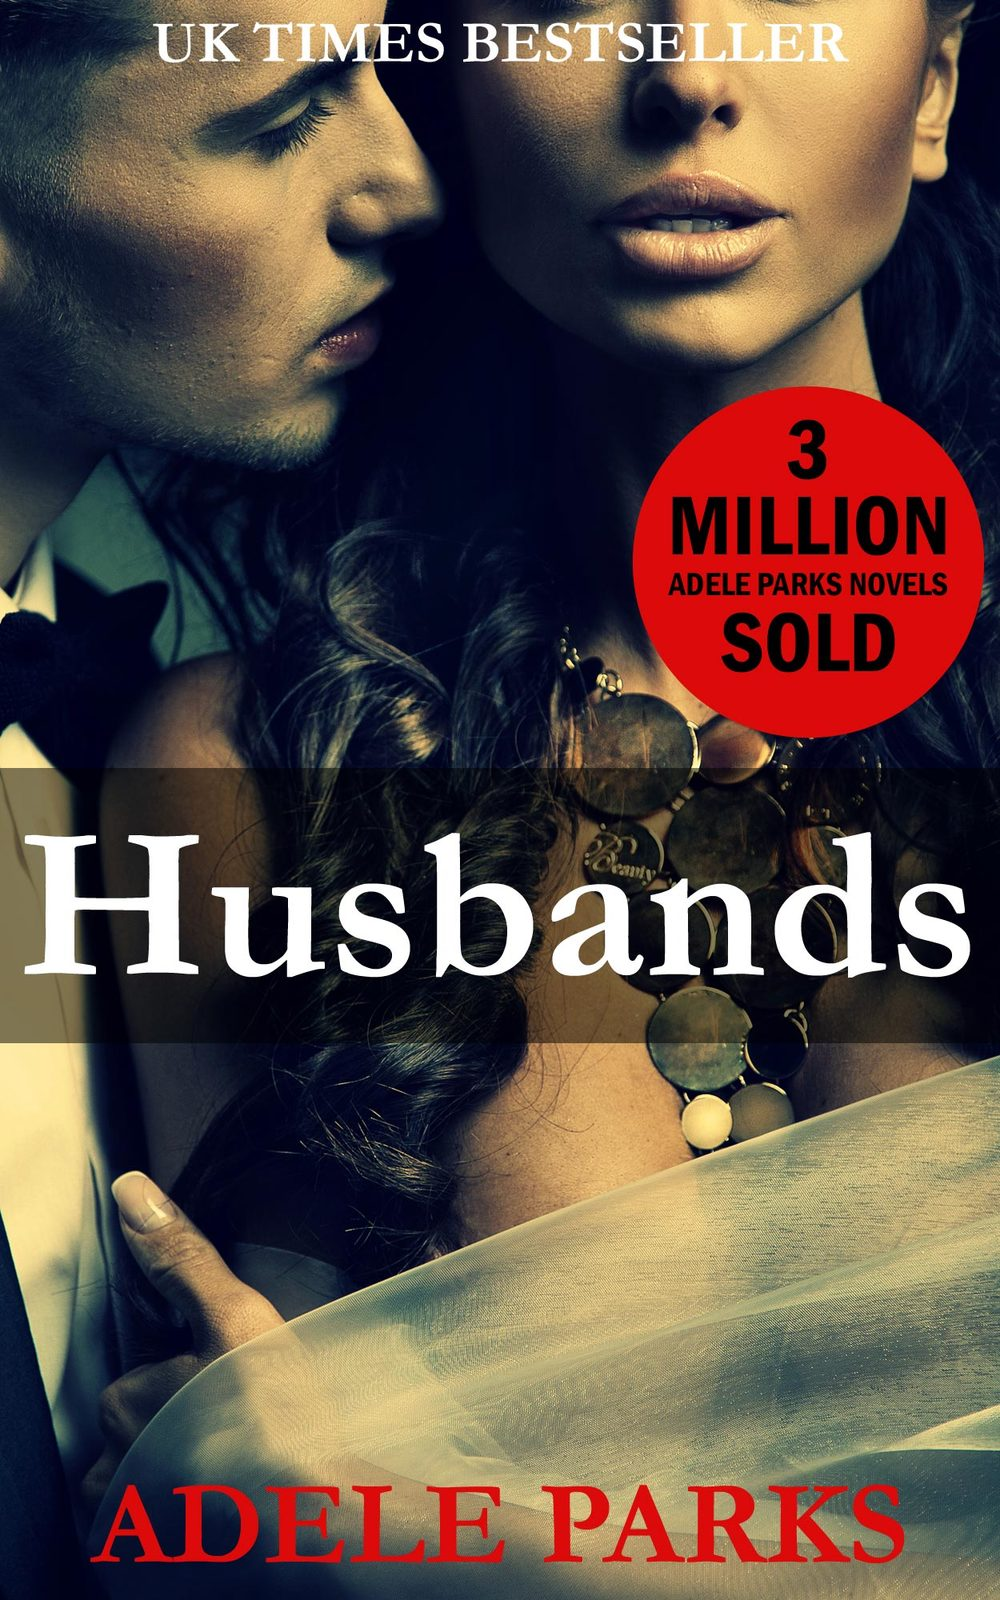 Husbands (USA) by Adele Parks